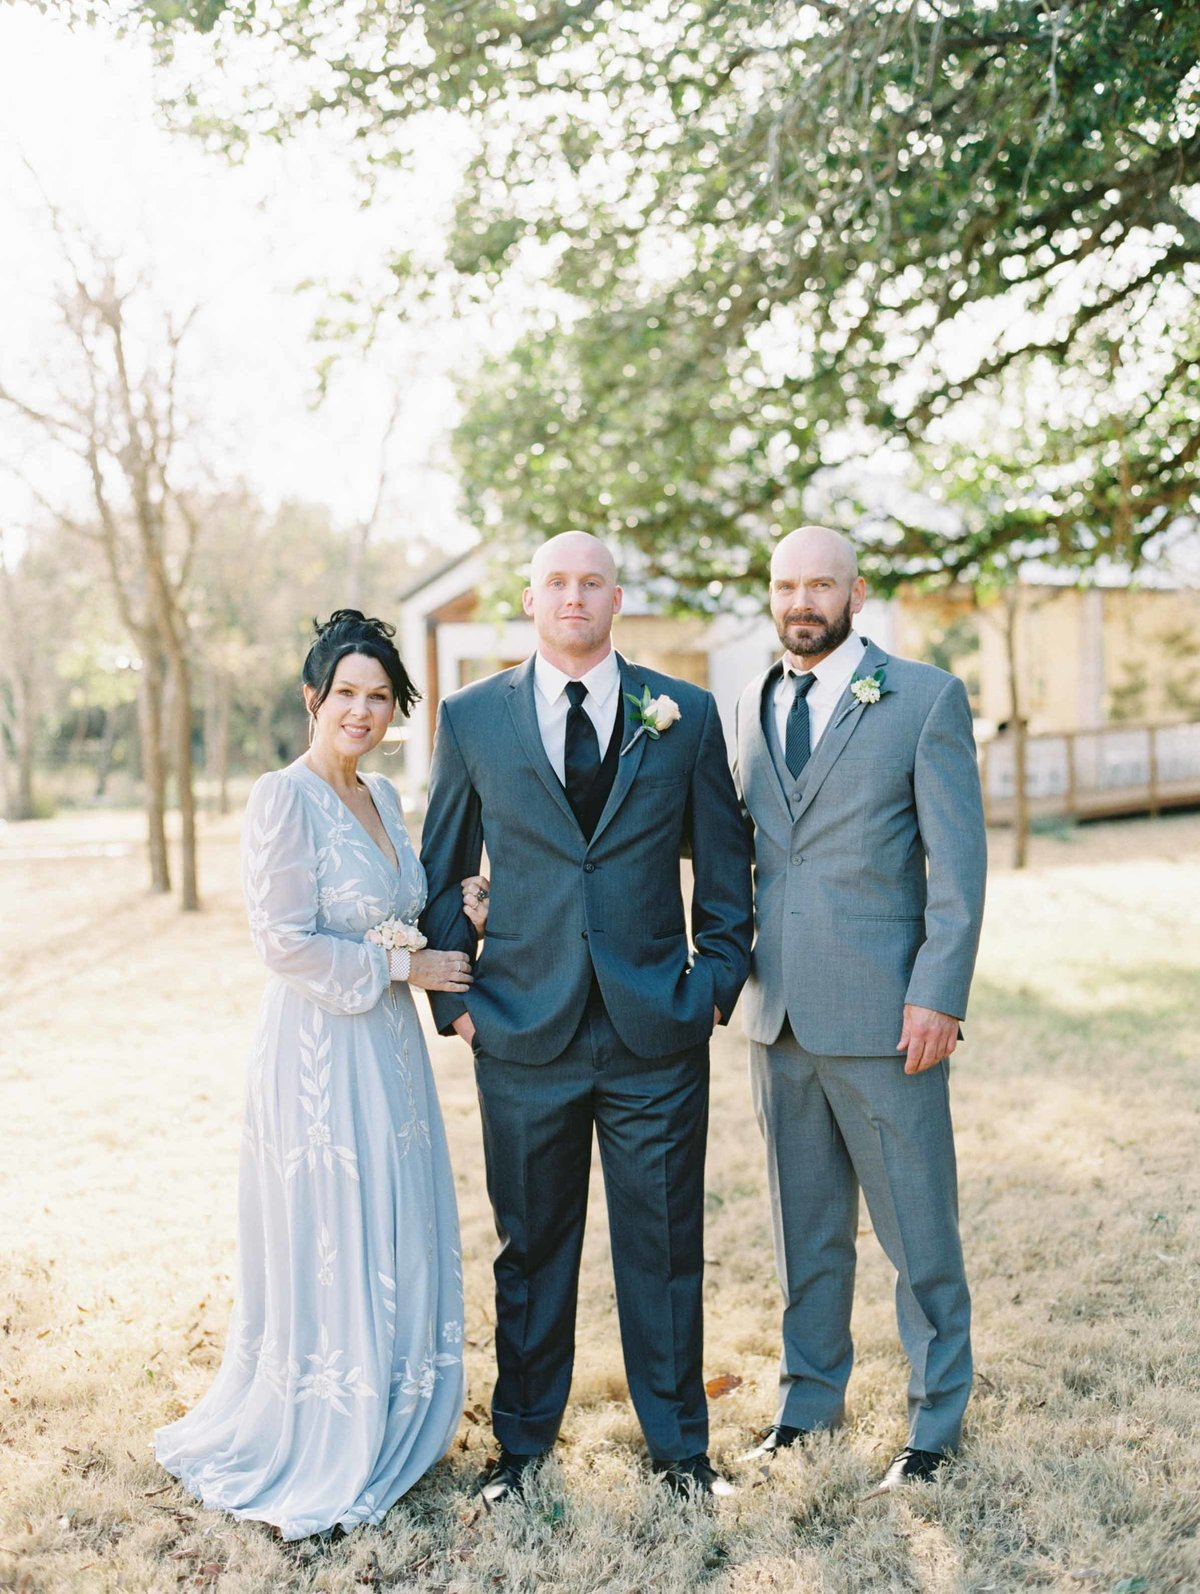 Angel_owens_photography_wedding47